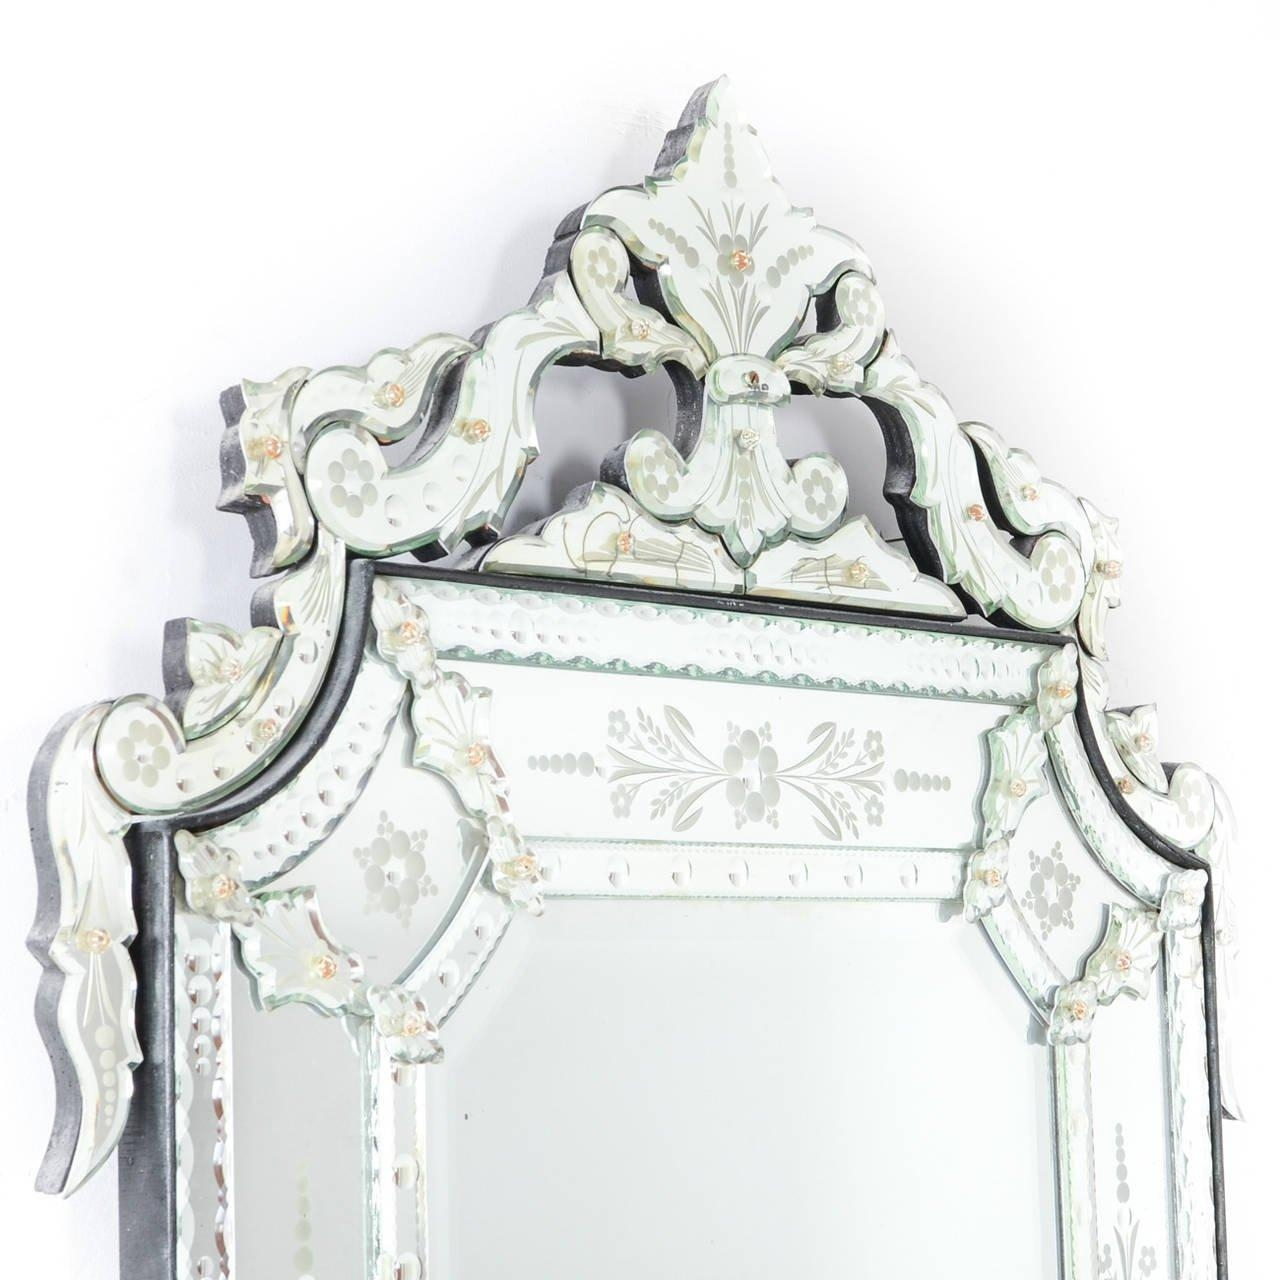 Large Venetian Mirror At 1Stdibs Inside Venetian Mirrors For Sale (Image 12 of 20)